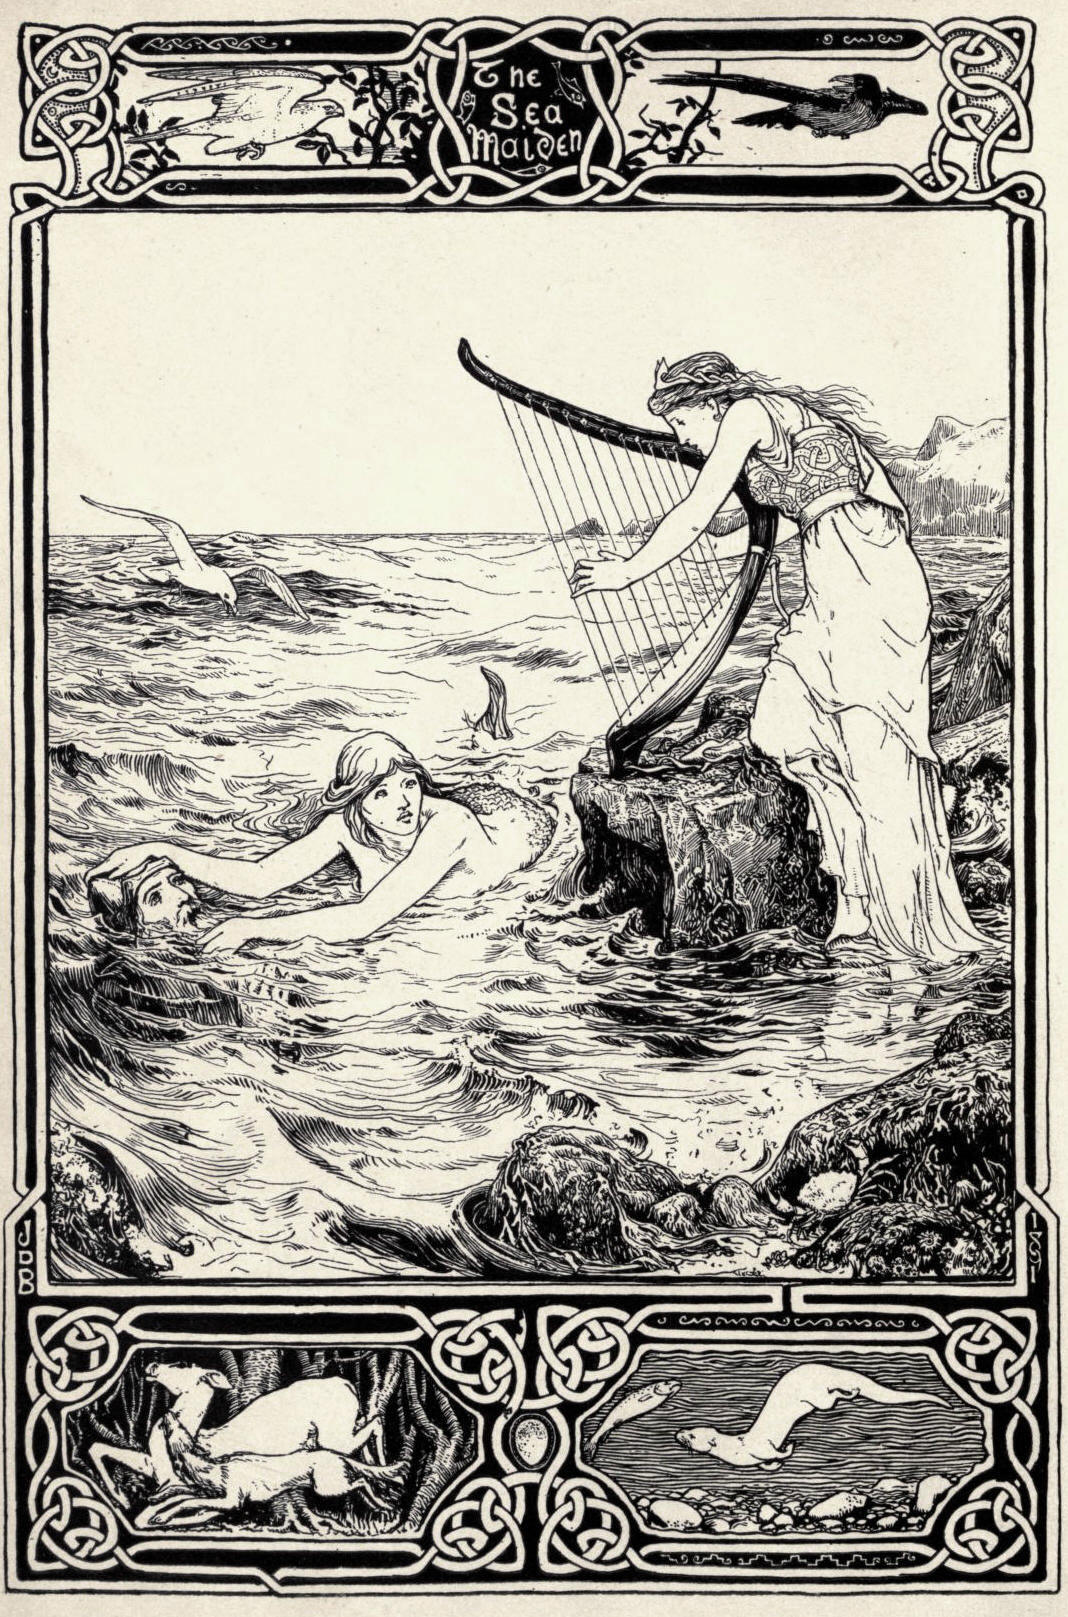 Celtic Fairy Tales: The Sea Maiden by John D. Batten https://archive.org/stream/celticfairytale00jacorich#page/n9/mode/1up